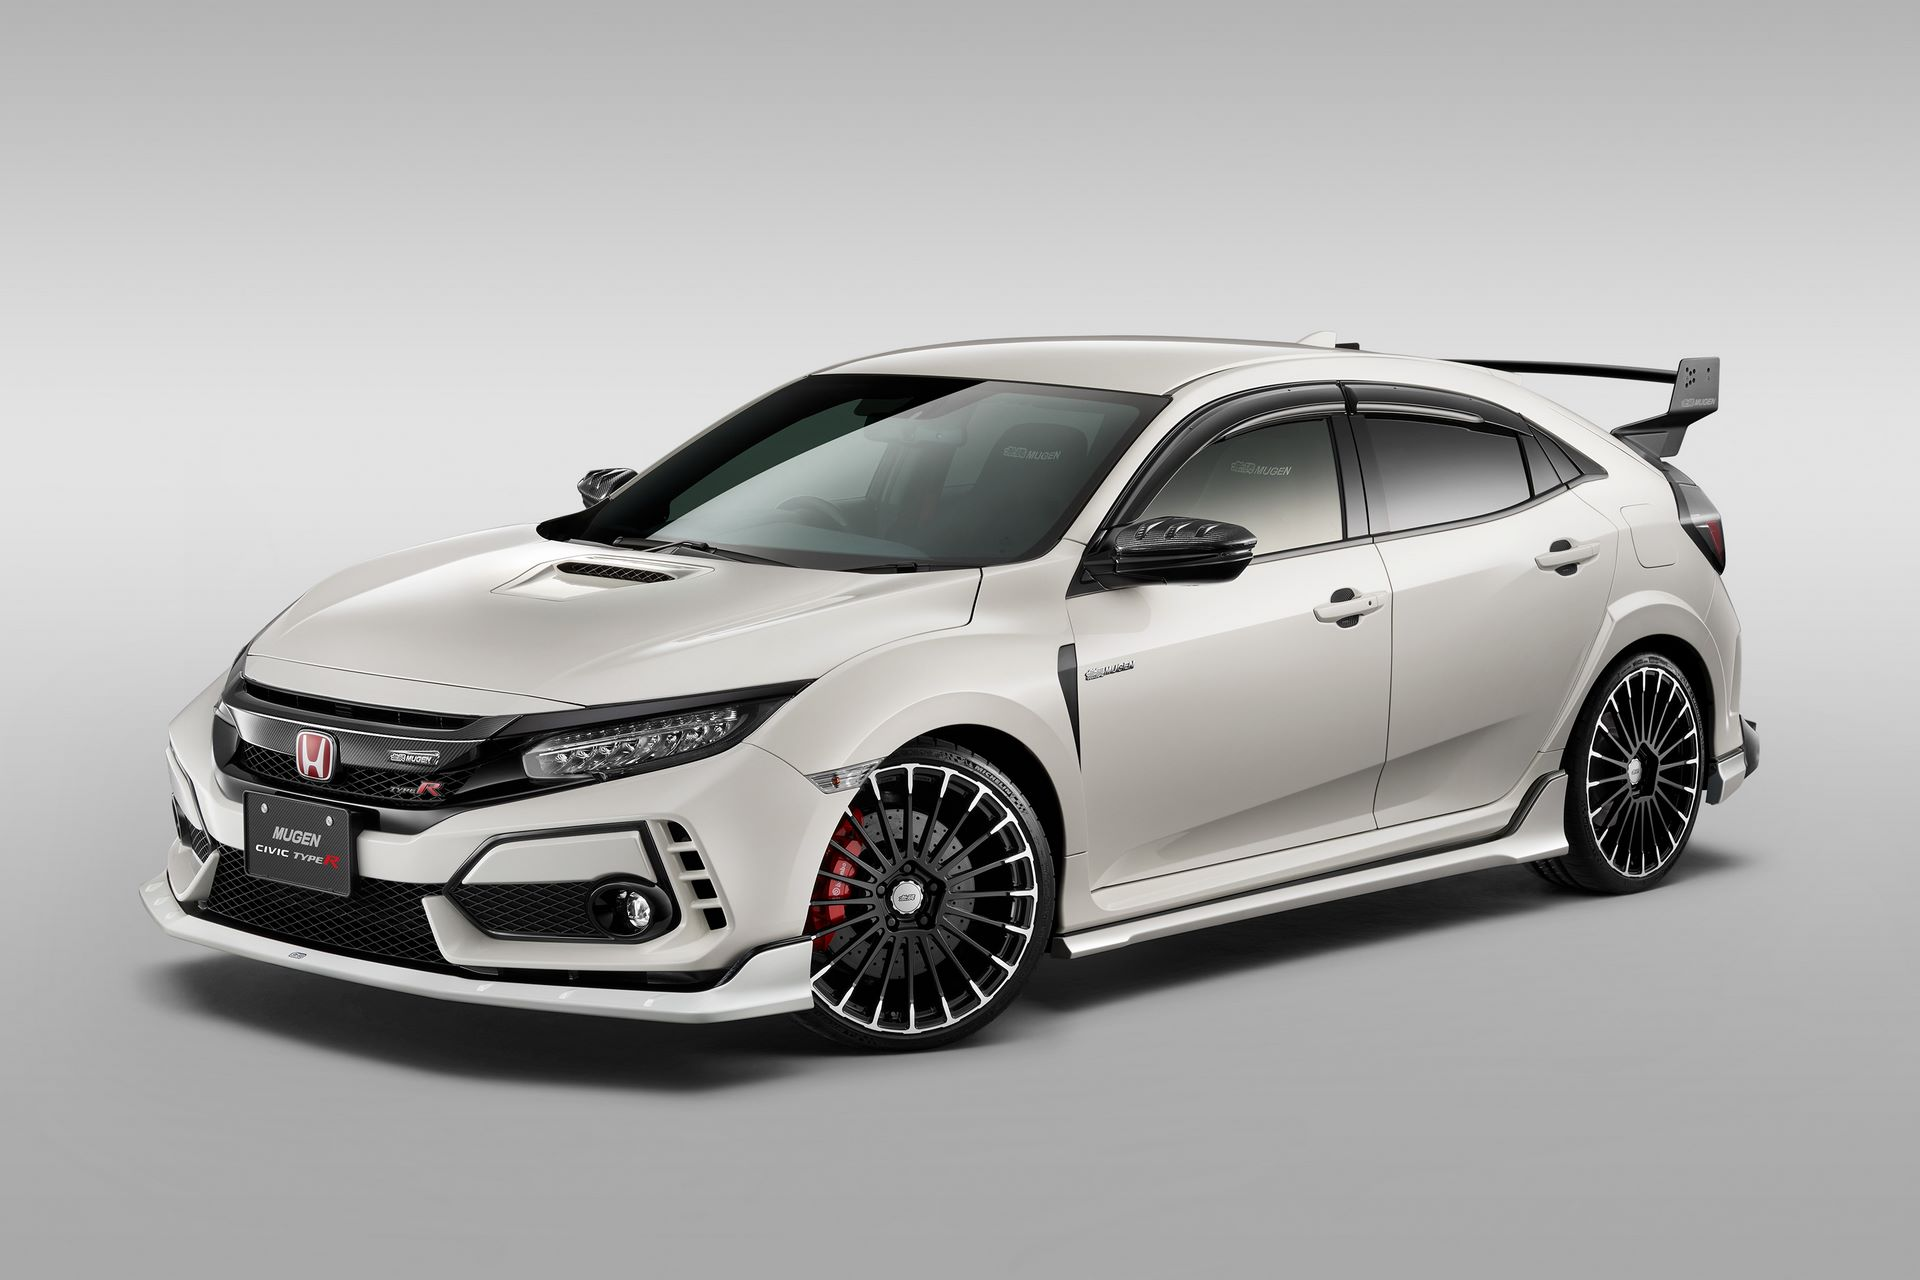 Honda-Civic-Type-R-by-Mugen-1